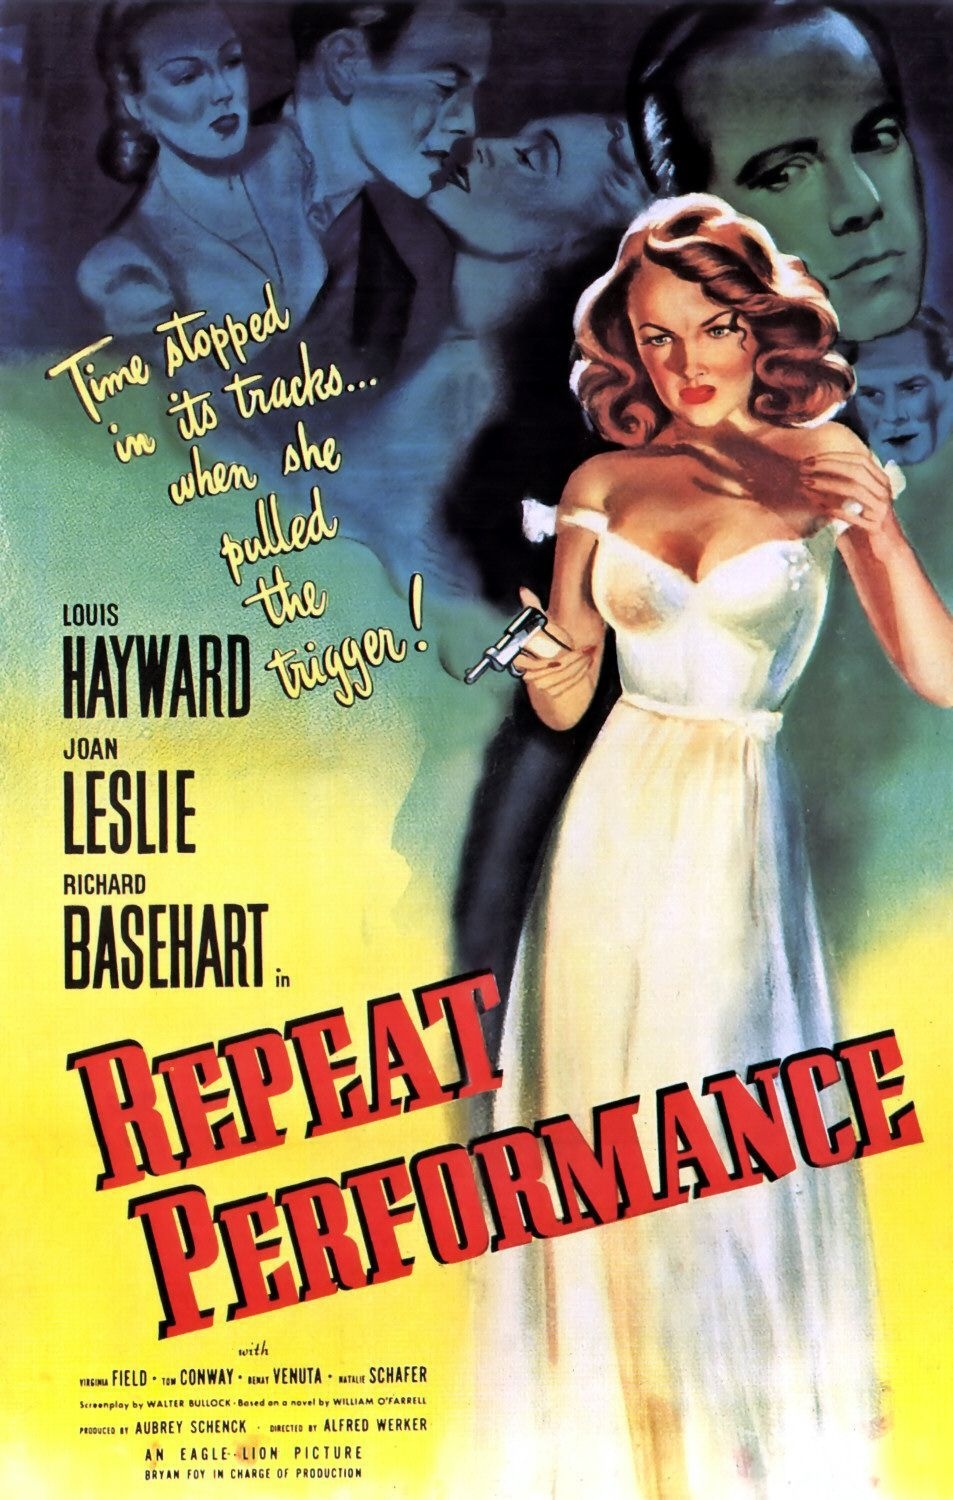 Repeat Performance (1947) Cast: Louis Hayward, Joan Leslie, Virginia Field, Tom Conway - film classic cult 40s poster